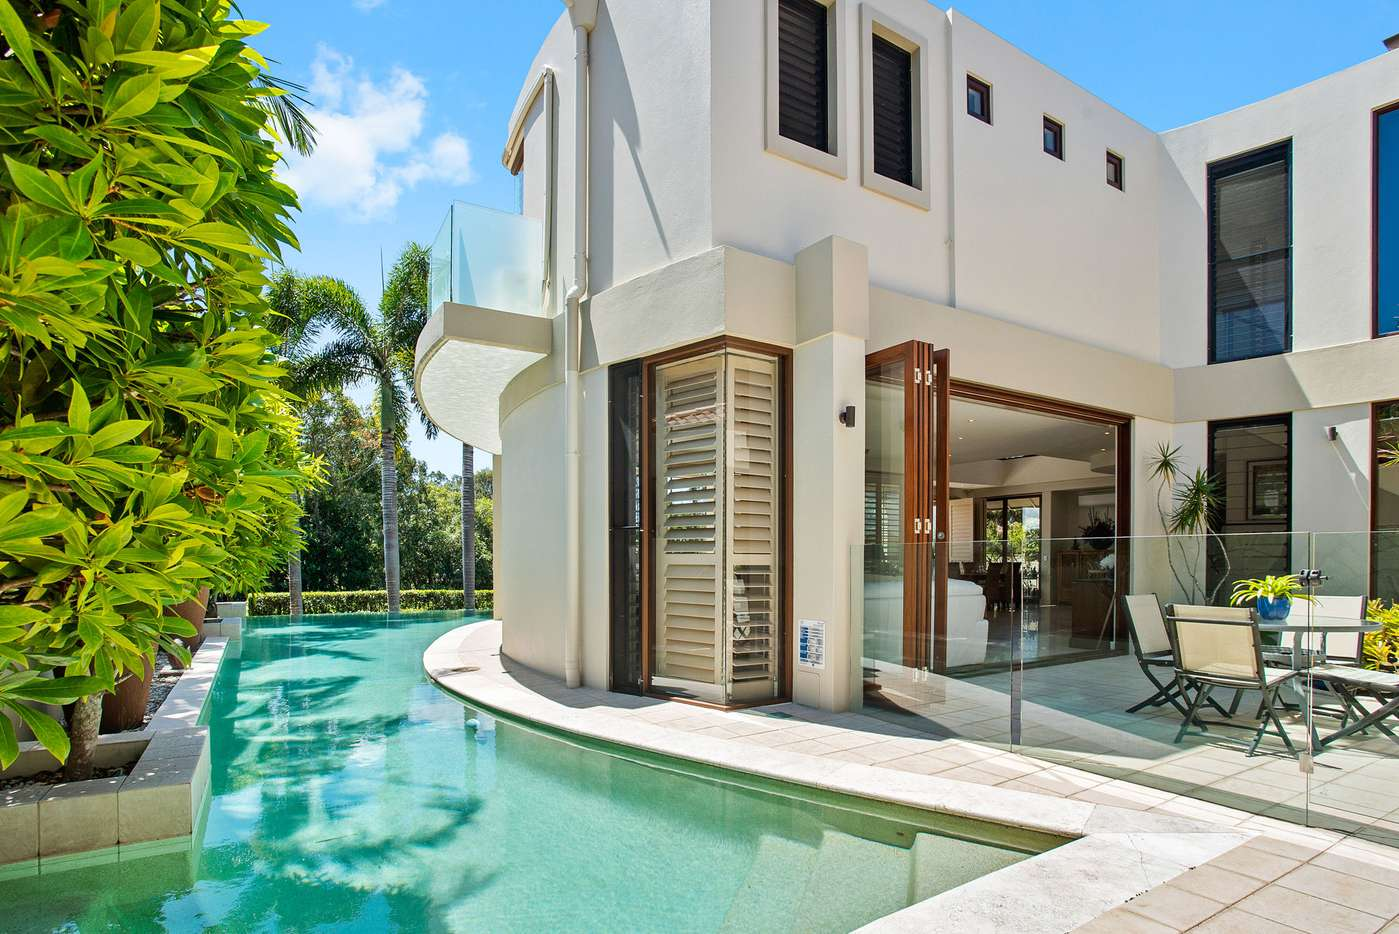 Main view of Homely house listing, 738/61 Noosa Springs Drive, Noosa Heads, QLD 4567